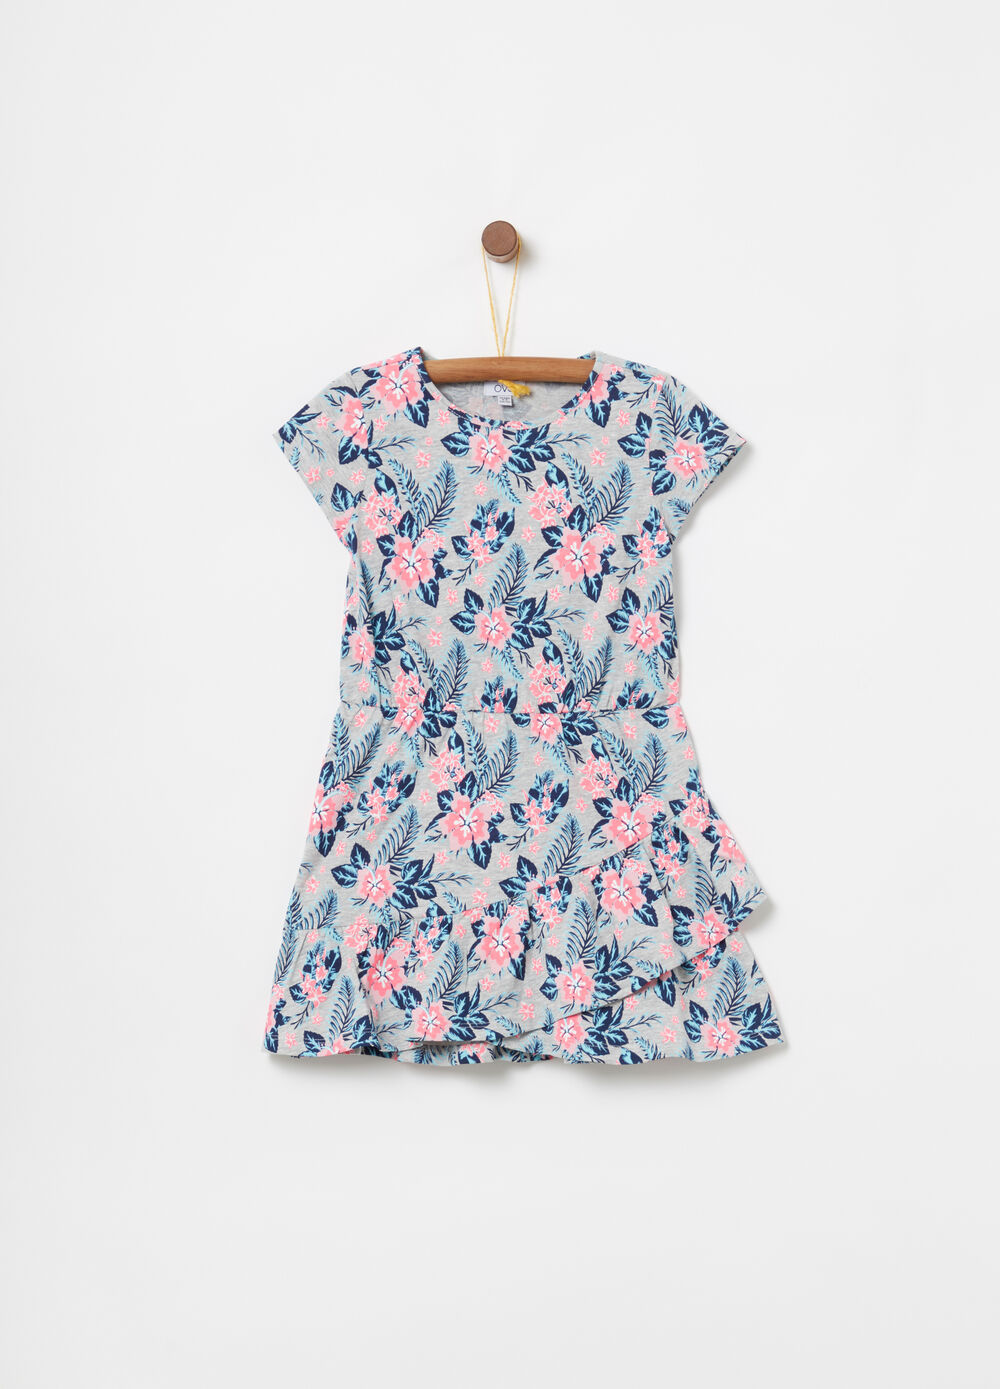 Cotton dress with frills and floral pattern